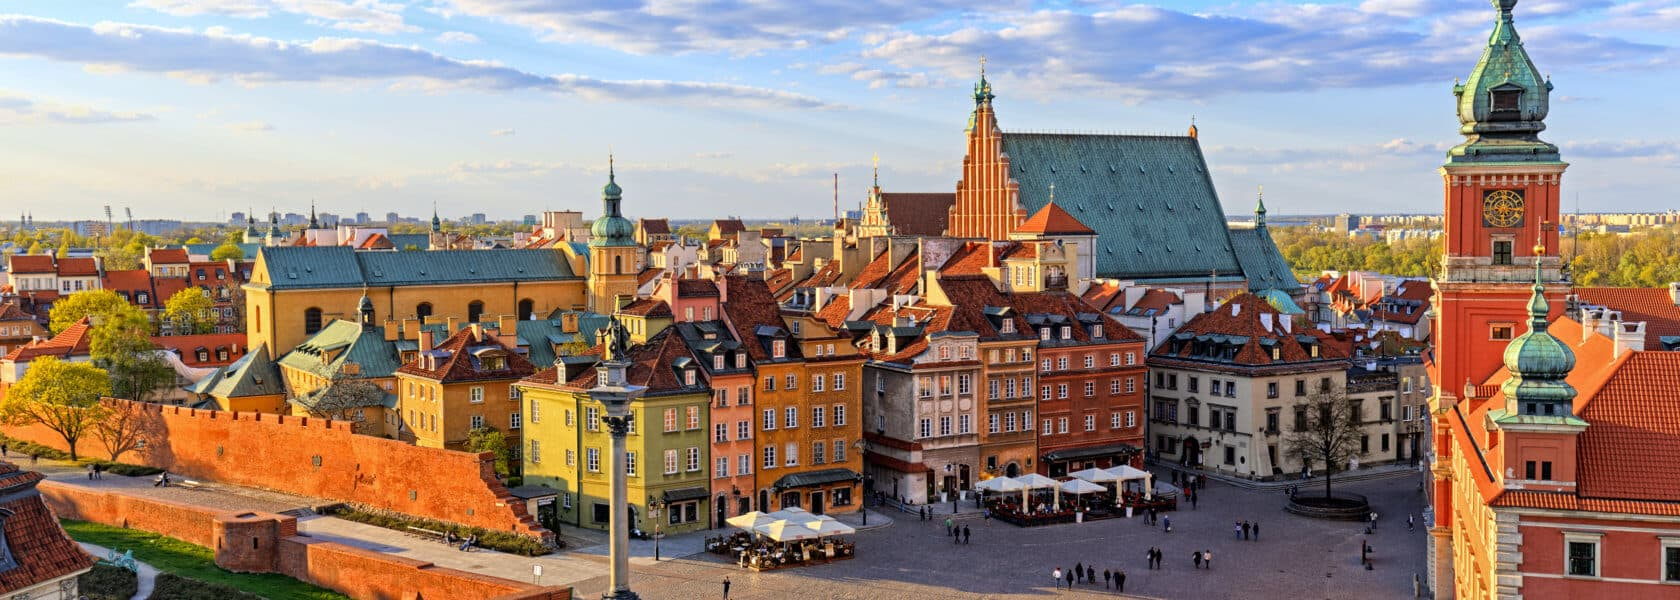 Masters Degree Scholarships In Poland